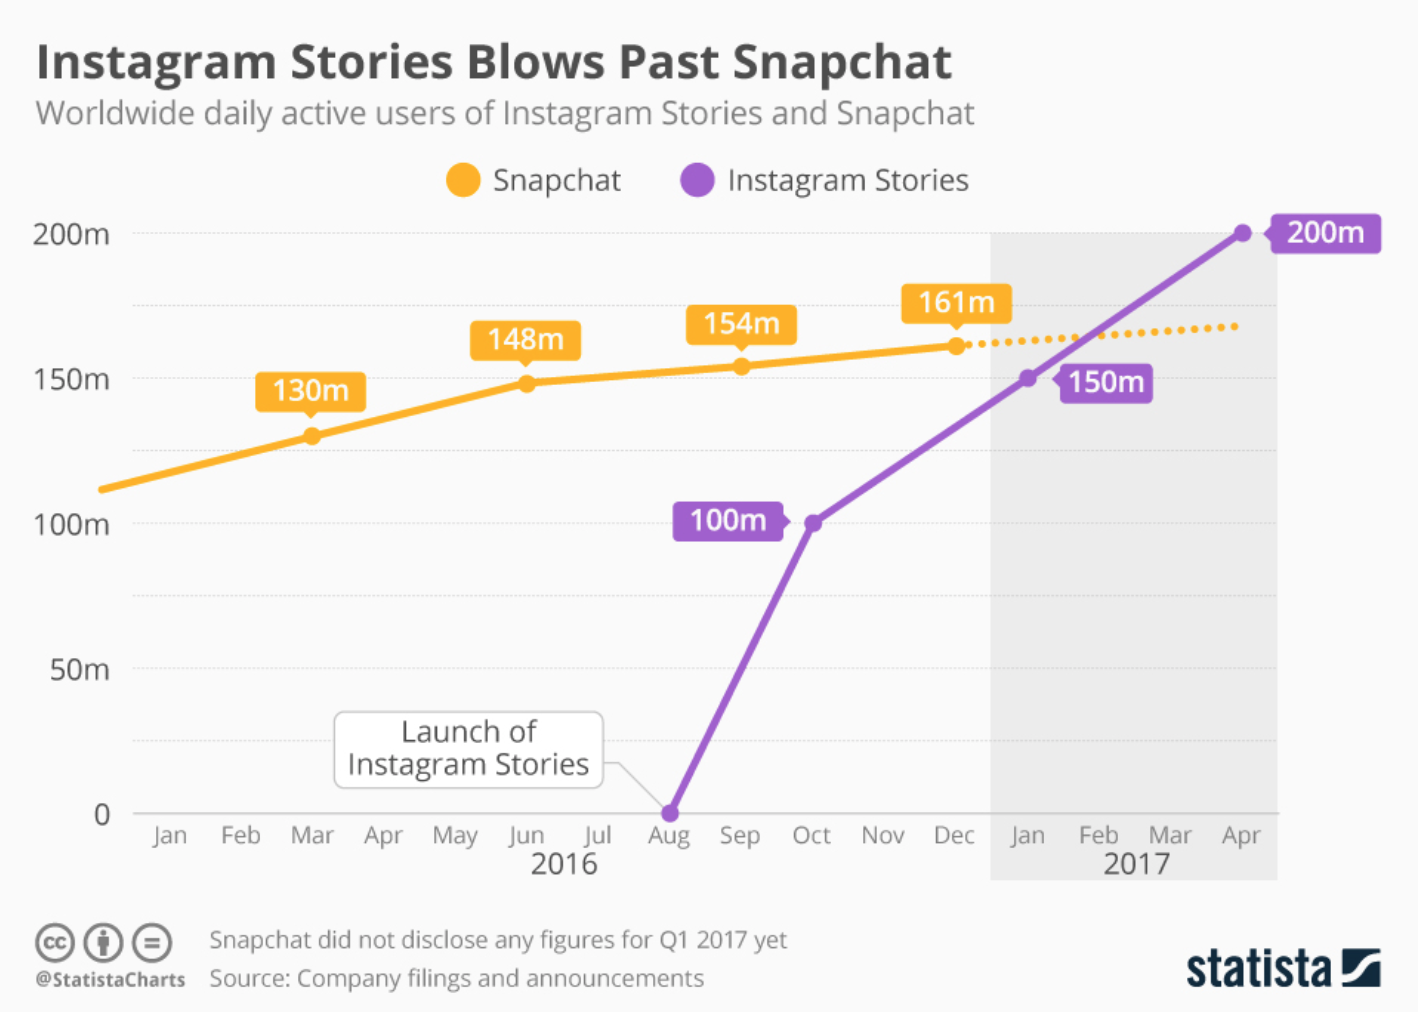 Instagram Stories vs Snapchat Stories Statistics